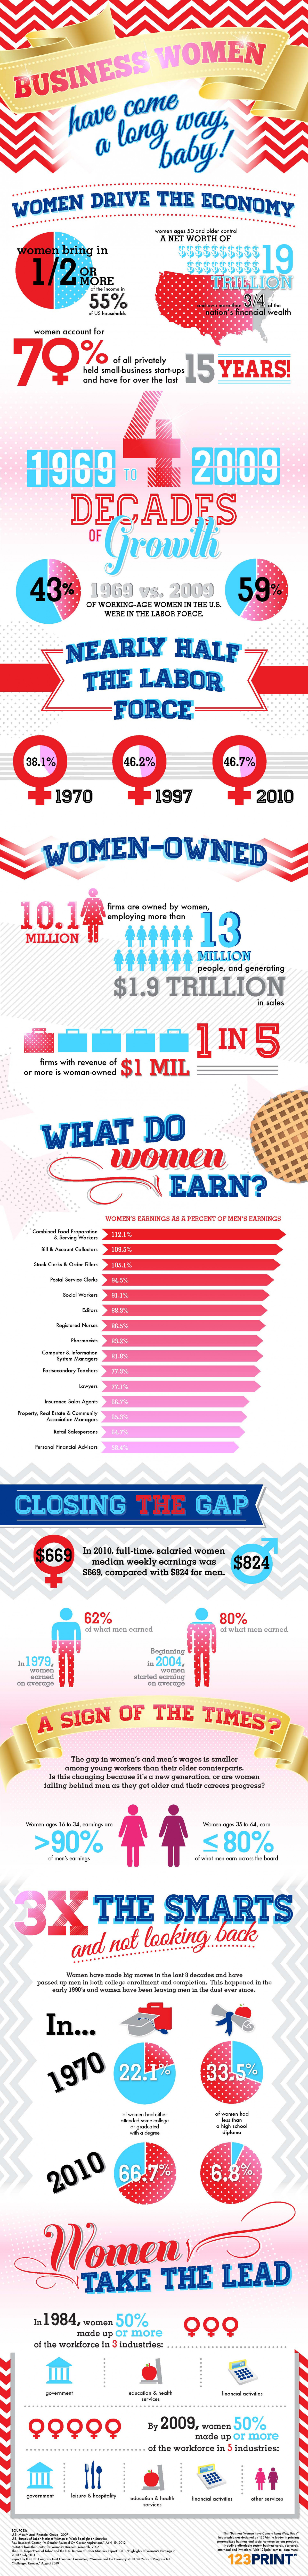 Business Women Have Come A Long Way Infographic